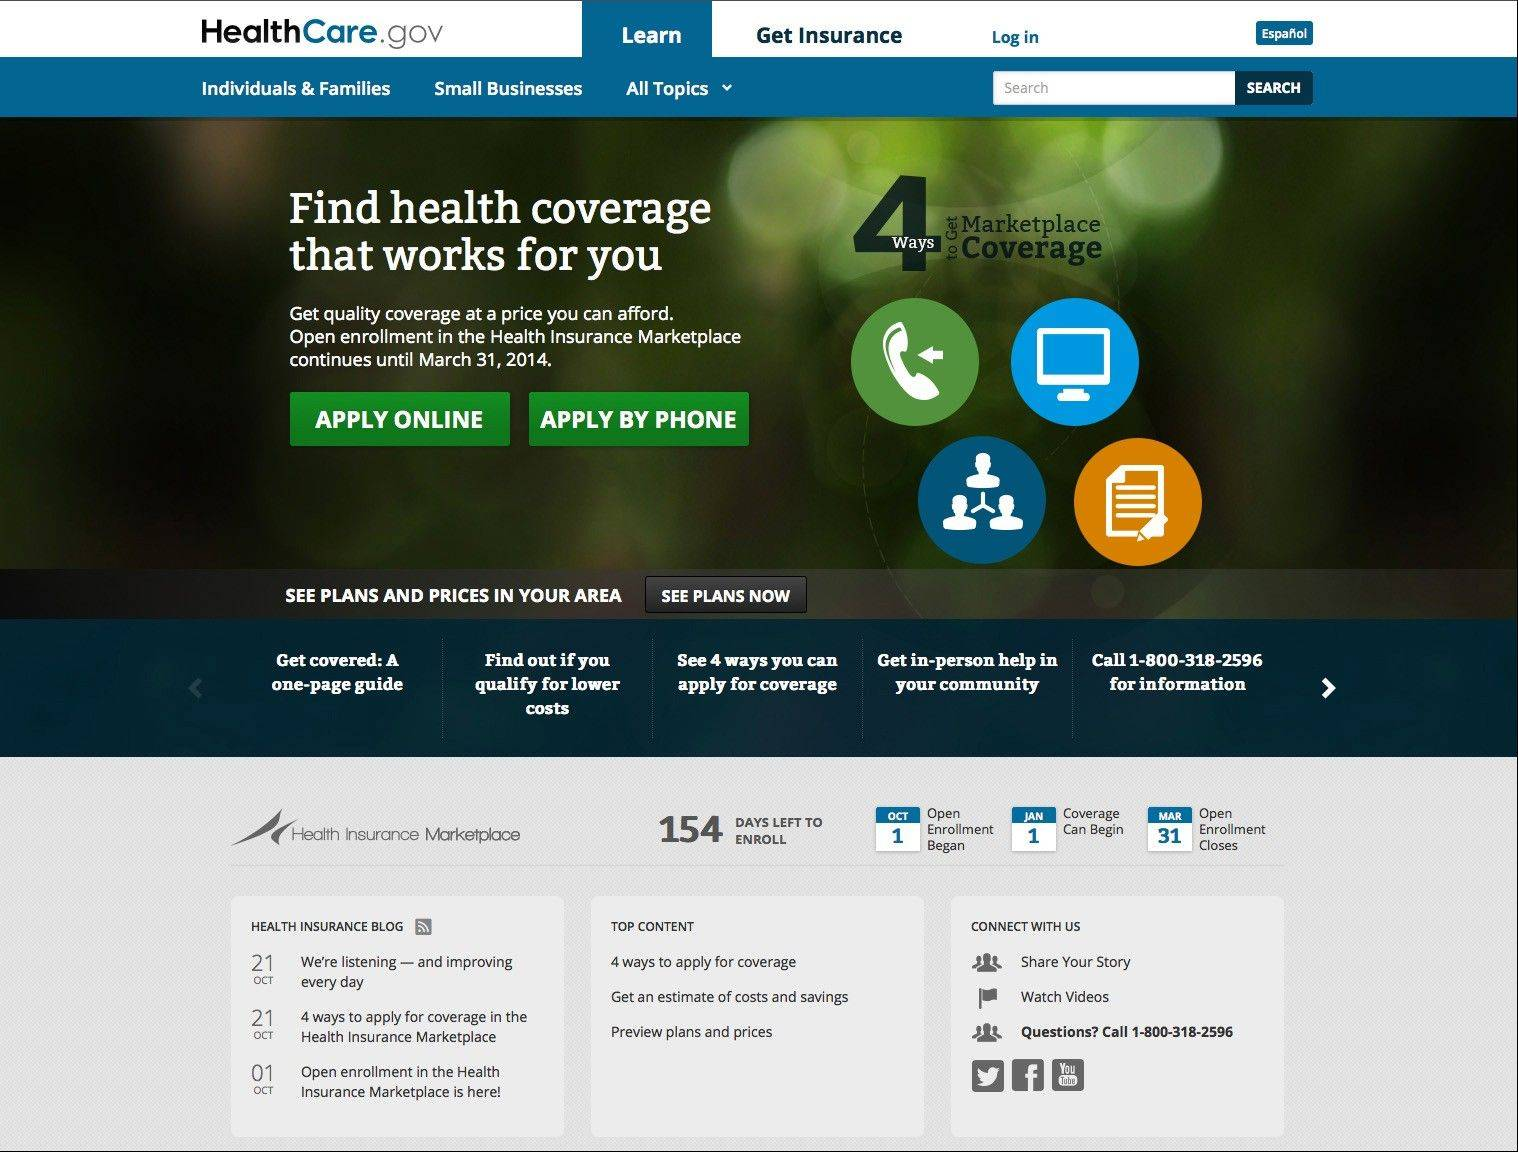 Illinoisans must use HealthCare.gov to shop for health insurance under Obamacare, but it can be difficult to figure out if your preferred hospital or doctors would be included in any plan you find.